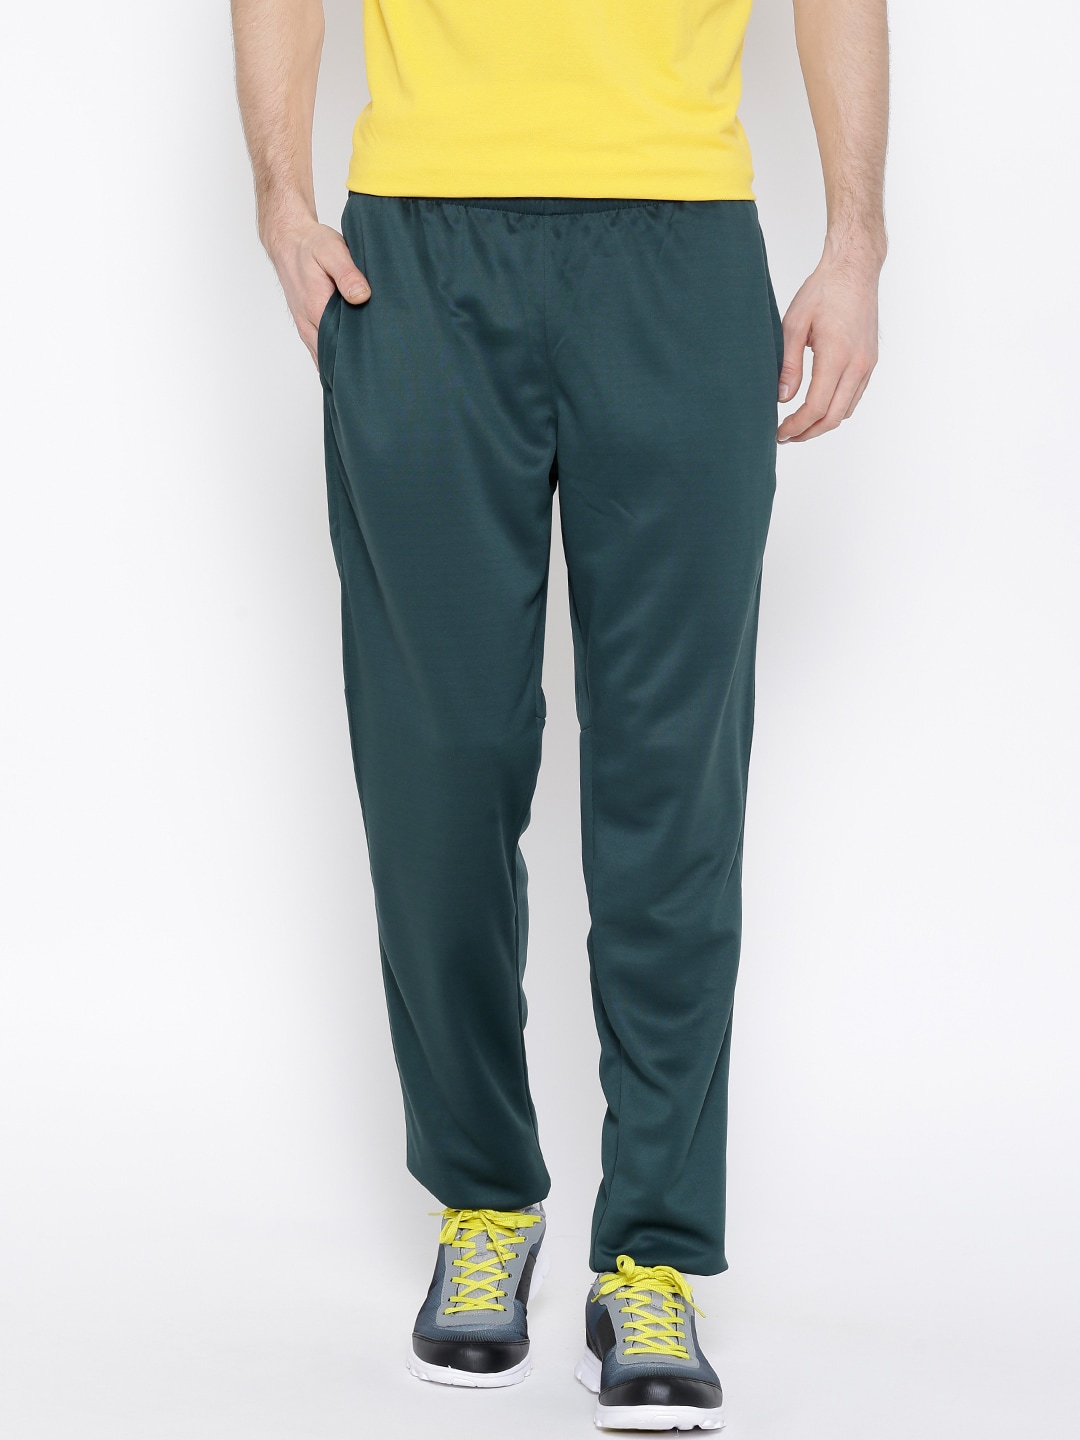 797bc6218e88 reebok cotton track pants Sale